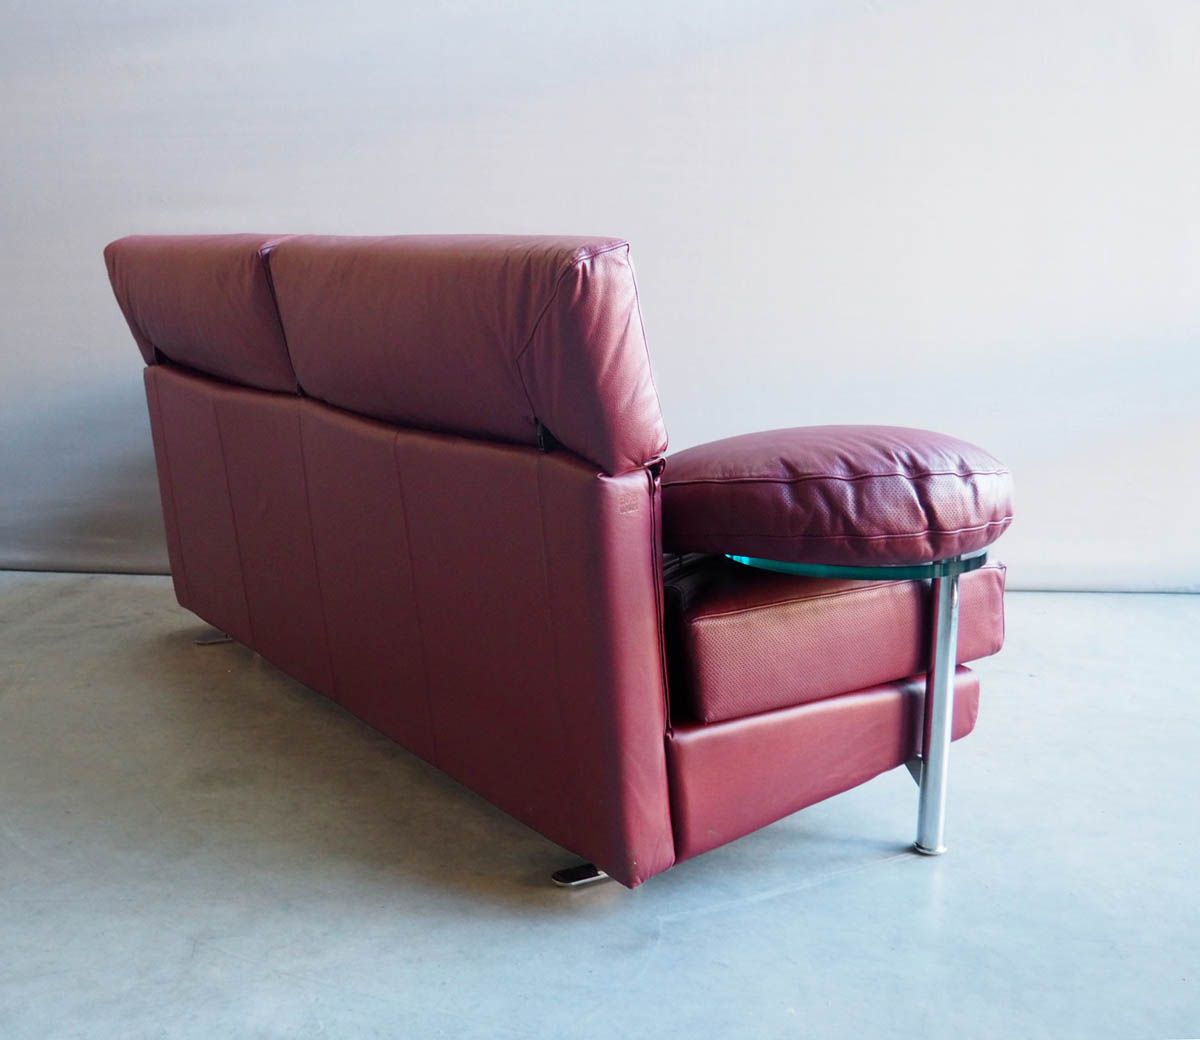 Vintage Red Leather Arca Sofa By Paolo Piva For B B Italia